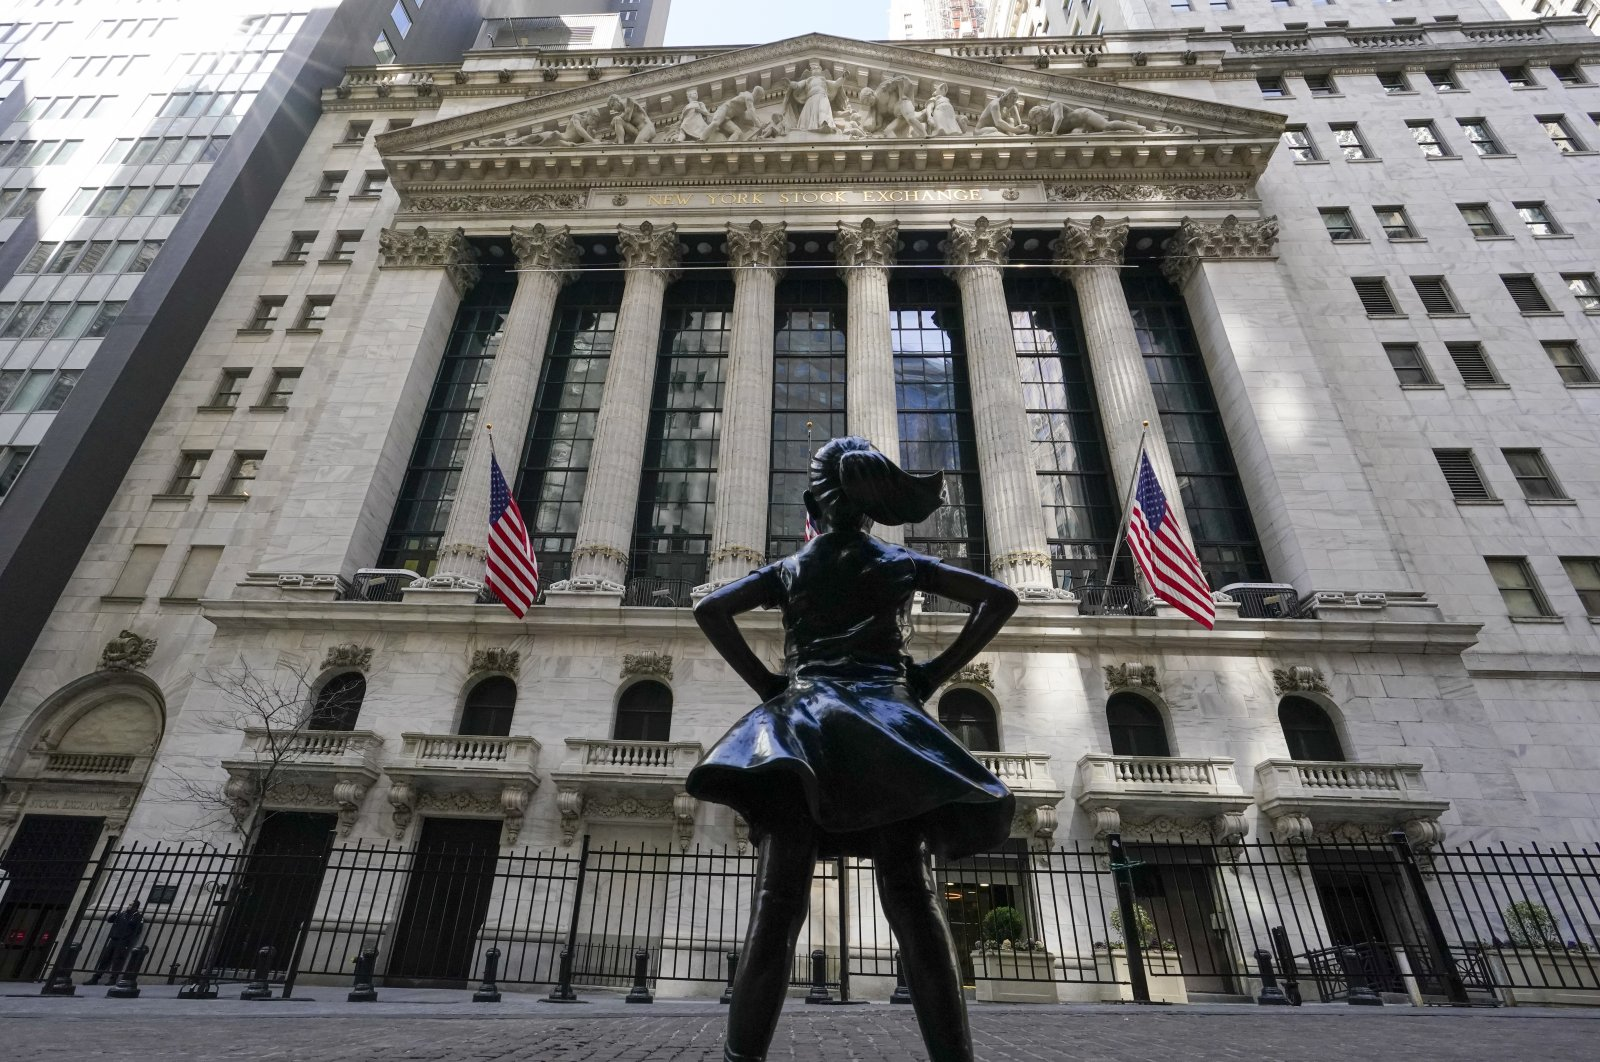 The Fearless Girl statue stands in front of the New York Stock Exchange in the Financial District of New York City, New York, U.S., March 23, 2021. (AP Photo)